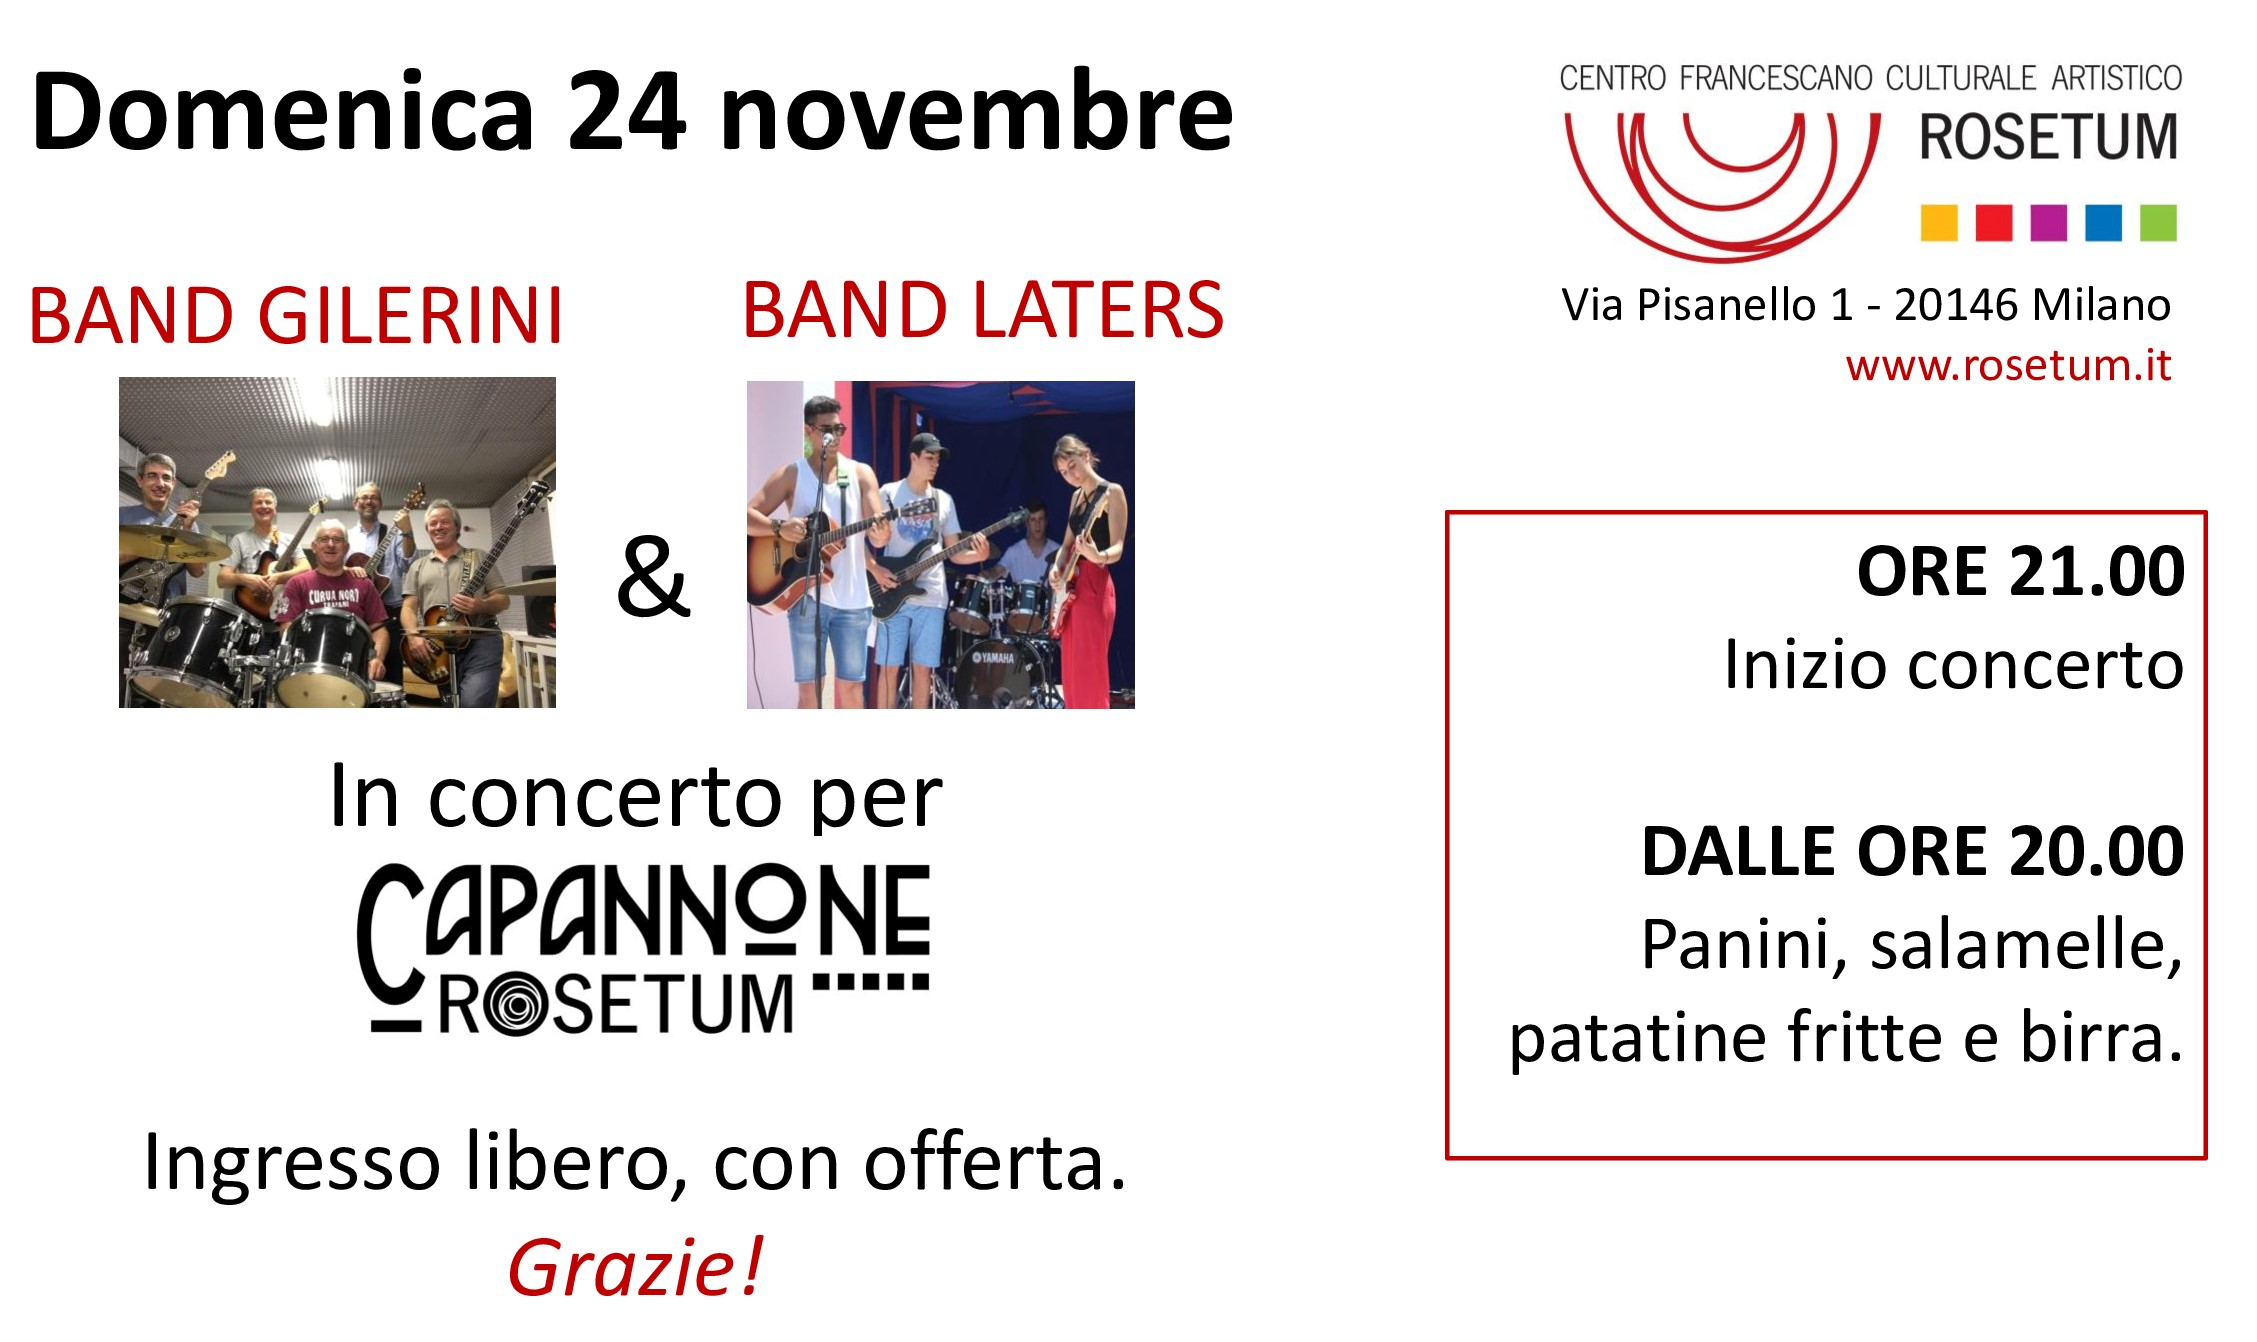 Band Gilerini e band laters per Capannone Rosetum